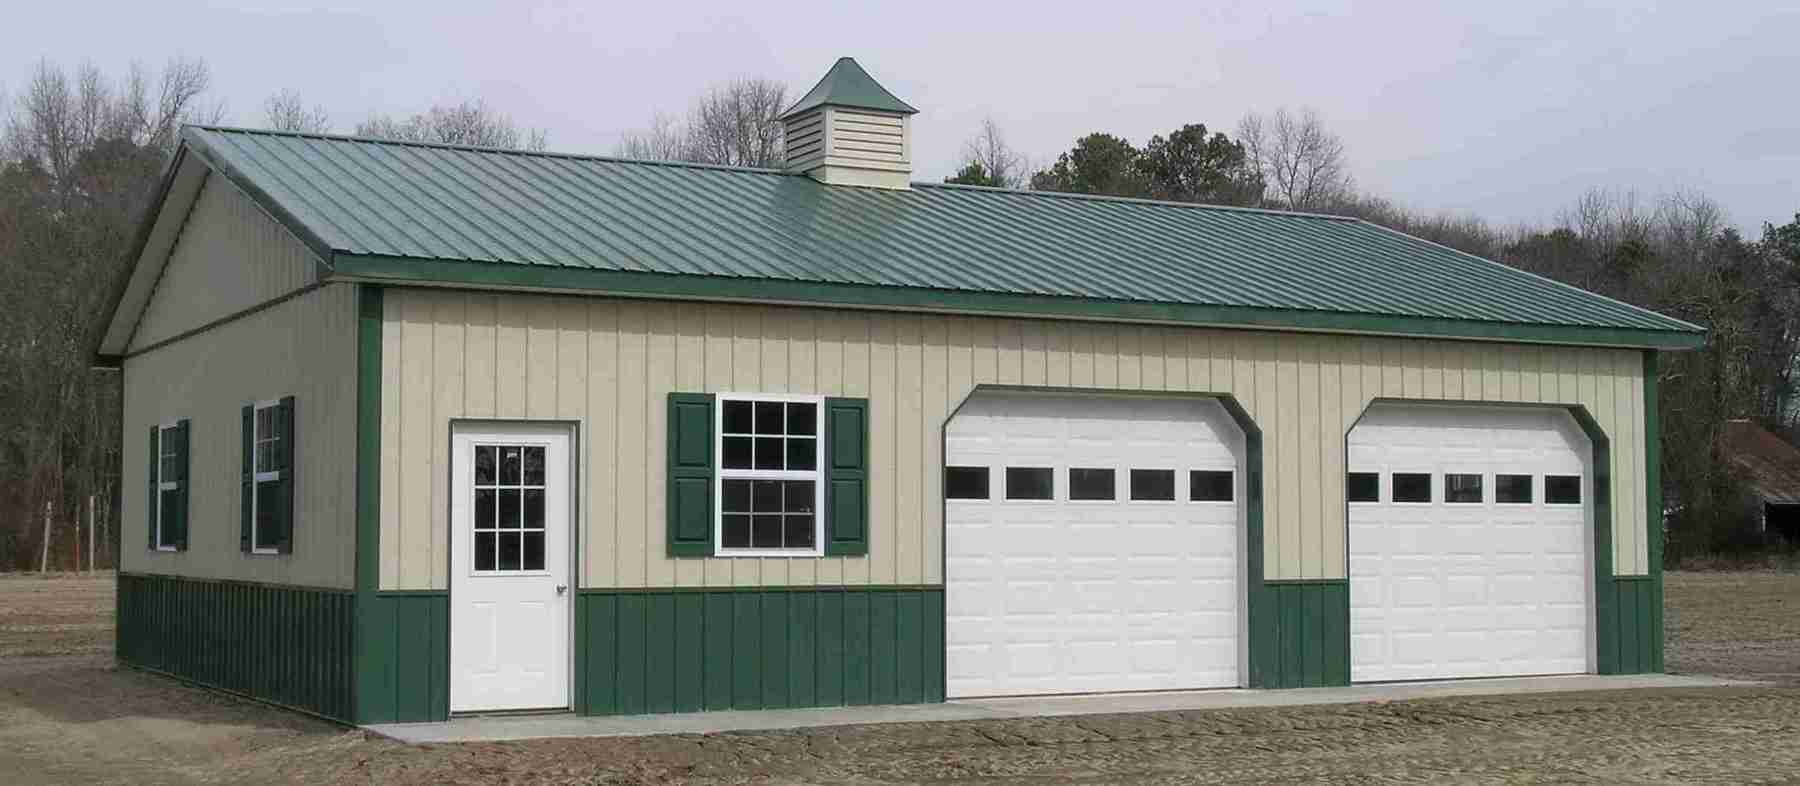 Pole barn garage kits 101 metal building homes Metal pole barn homes plans